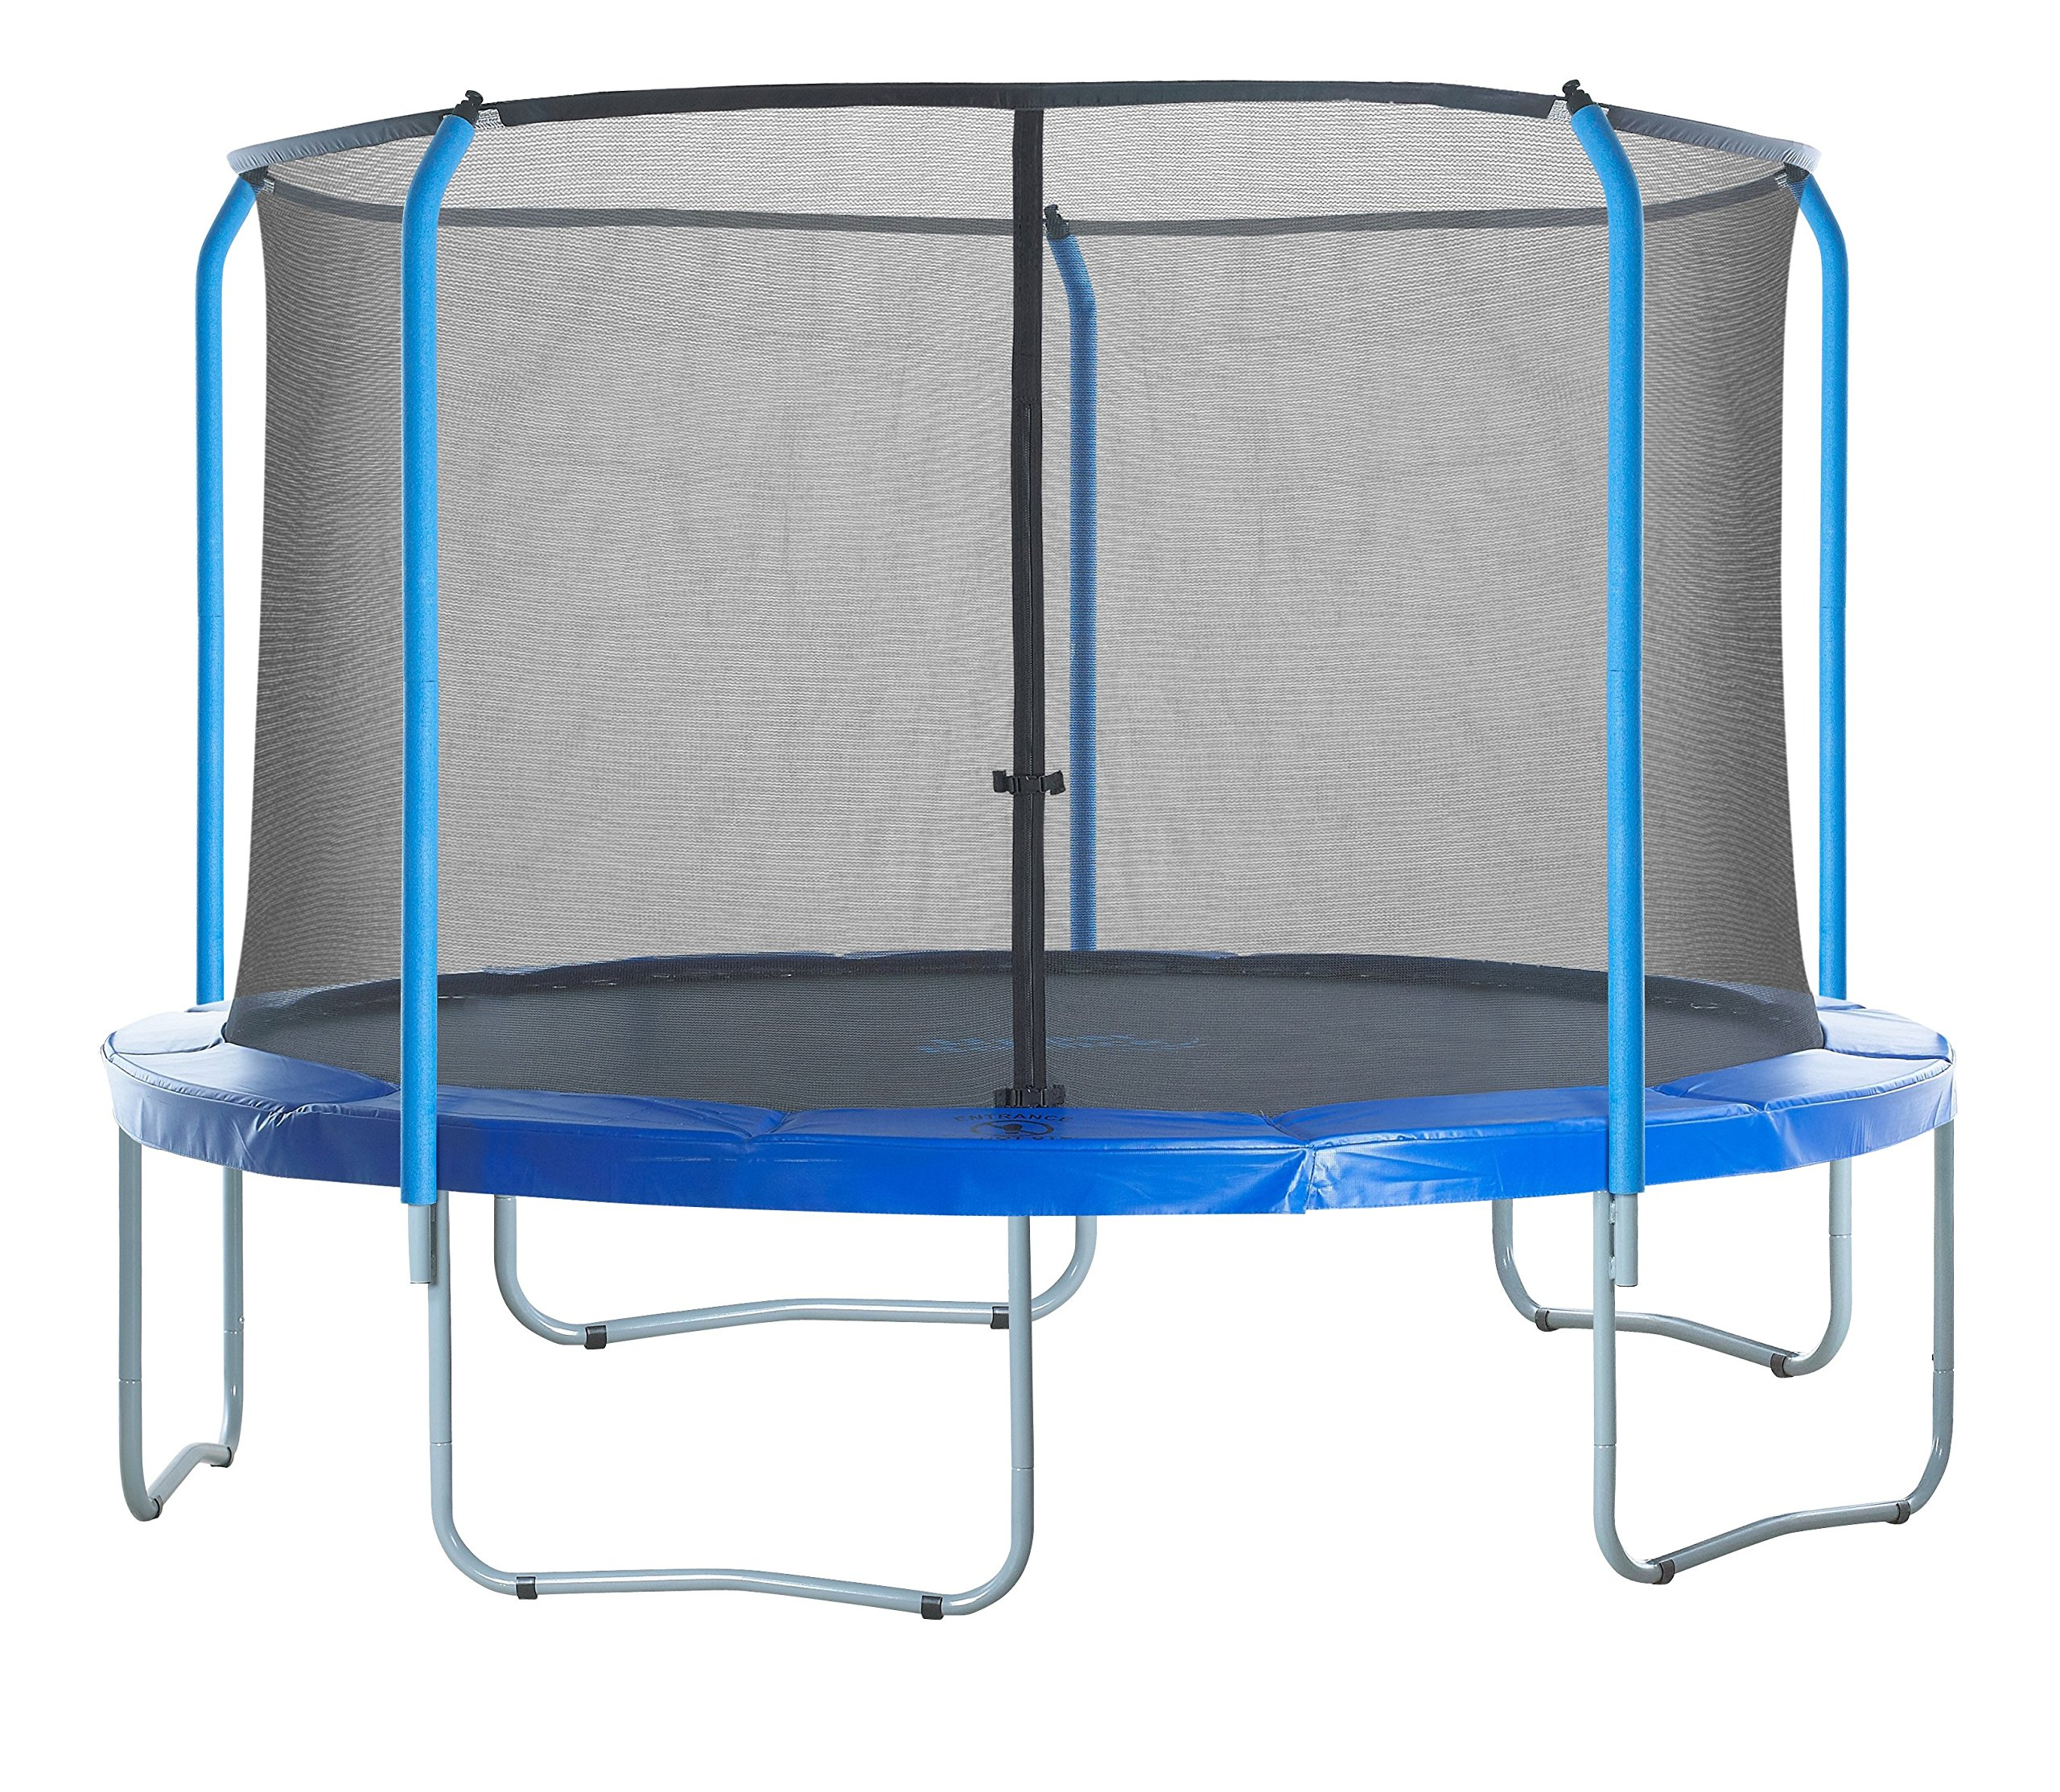 SKYTRIC Trampoline Enclosure Net (Universal) 15 ft Frame: 5 Curved Pole: with Top Ring Enclosure Systems -Sleeve on top Type- by SKYTRIC (Image #7)